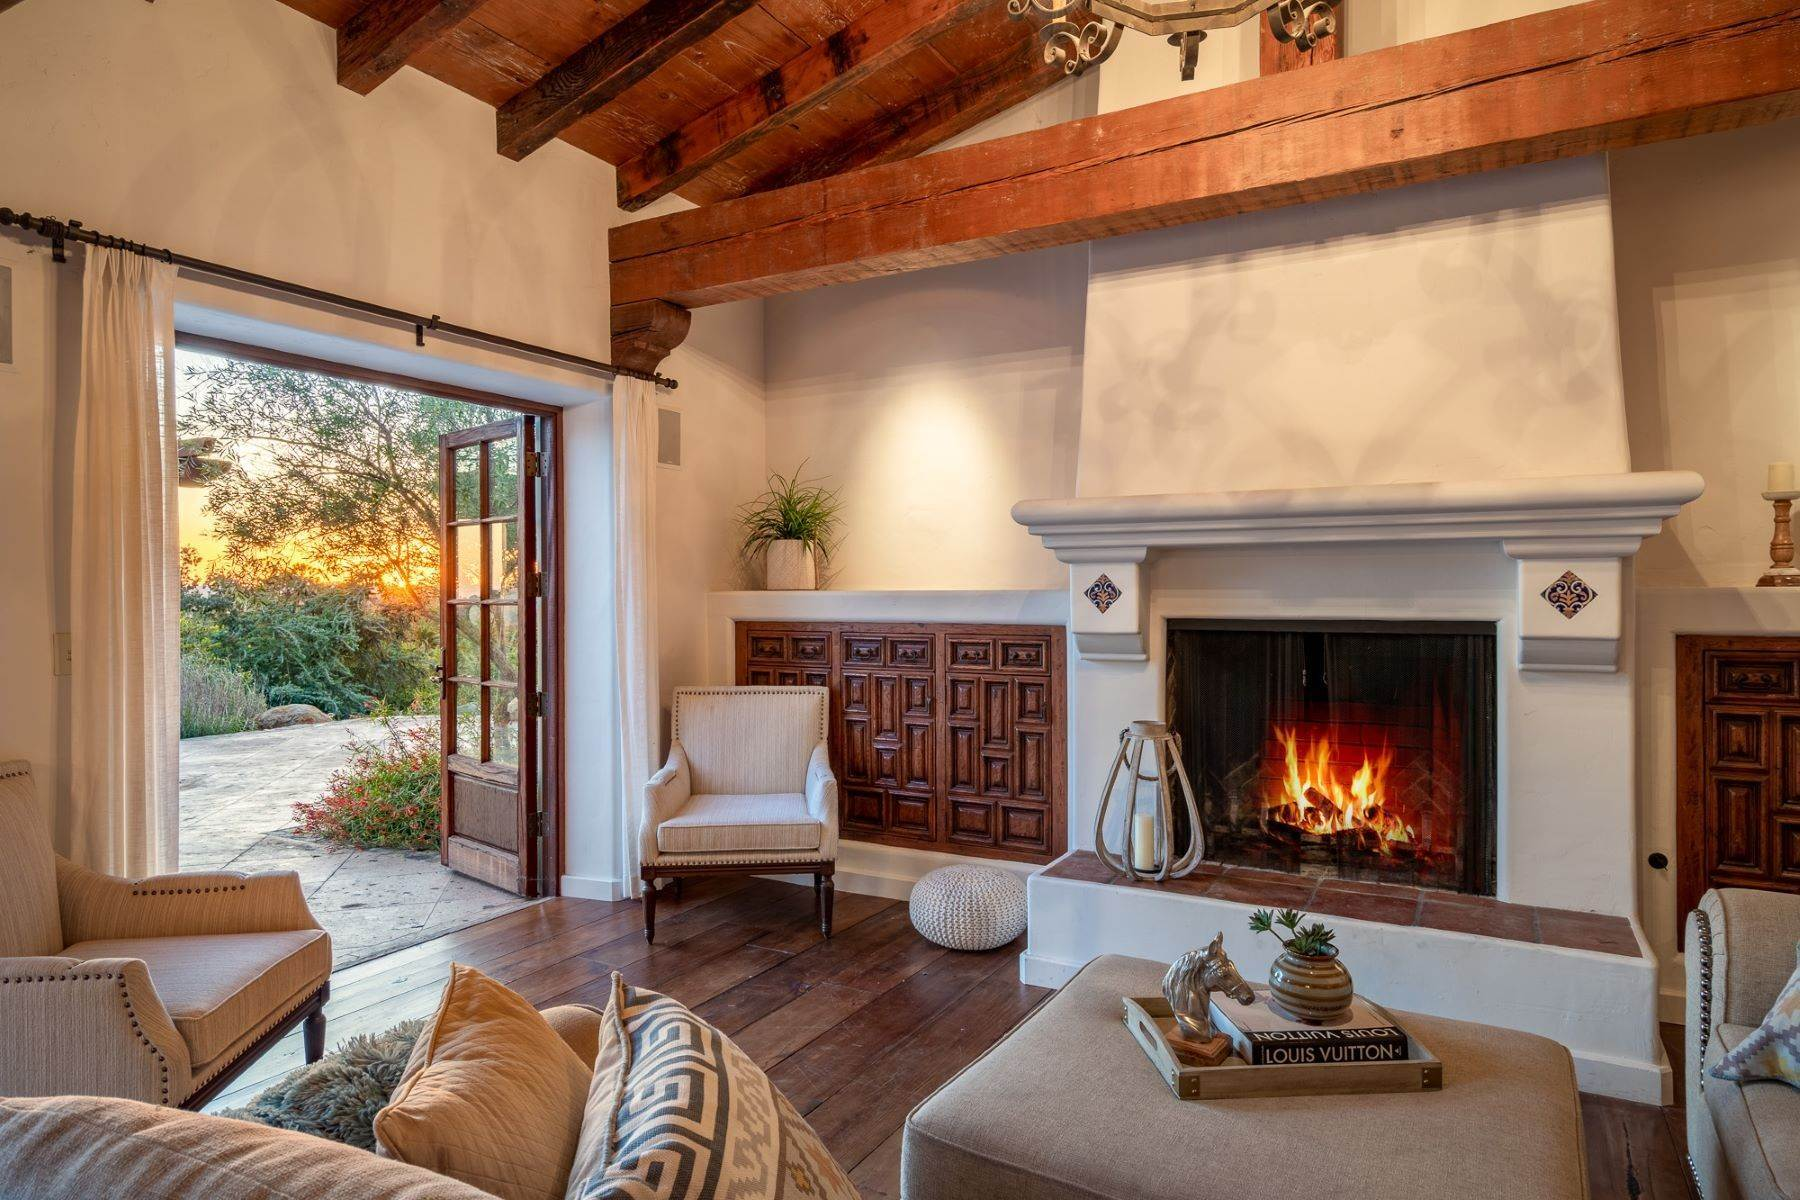 6. Single Family Homes for Sale at 17515 Avenida De Acacias, Rancho Santa Fe, CA 92067 17515 Avenida De Acacias Rancho Santa Fe, California 92067 United States